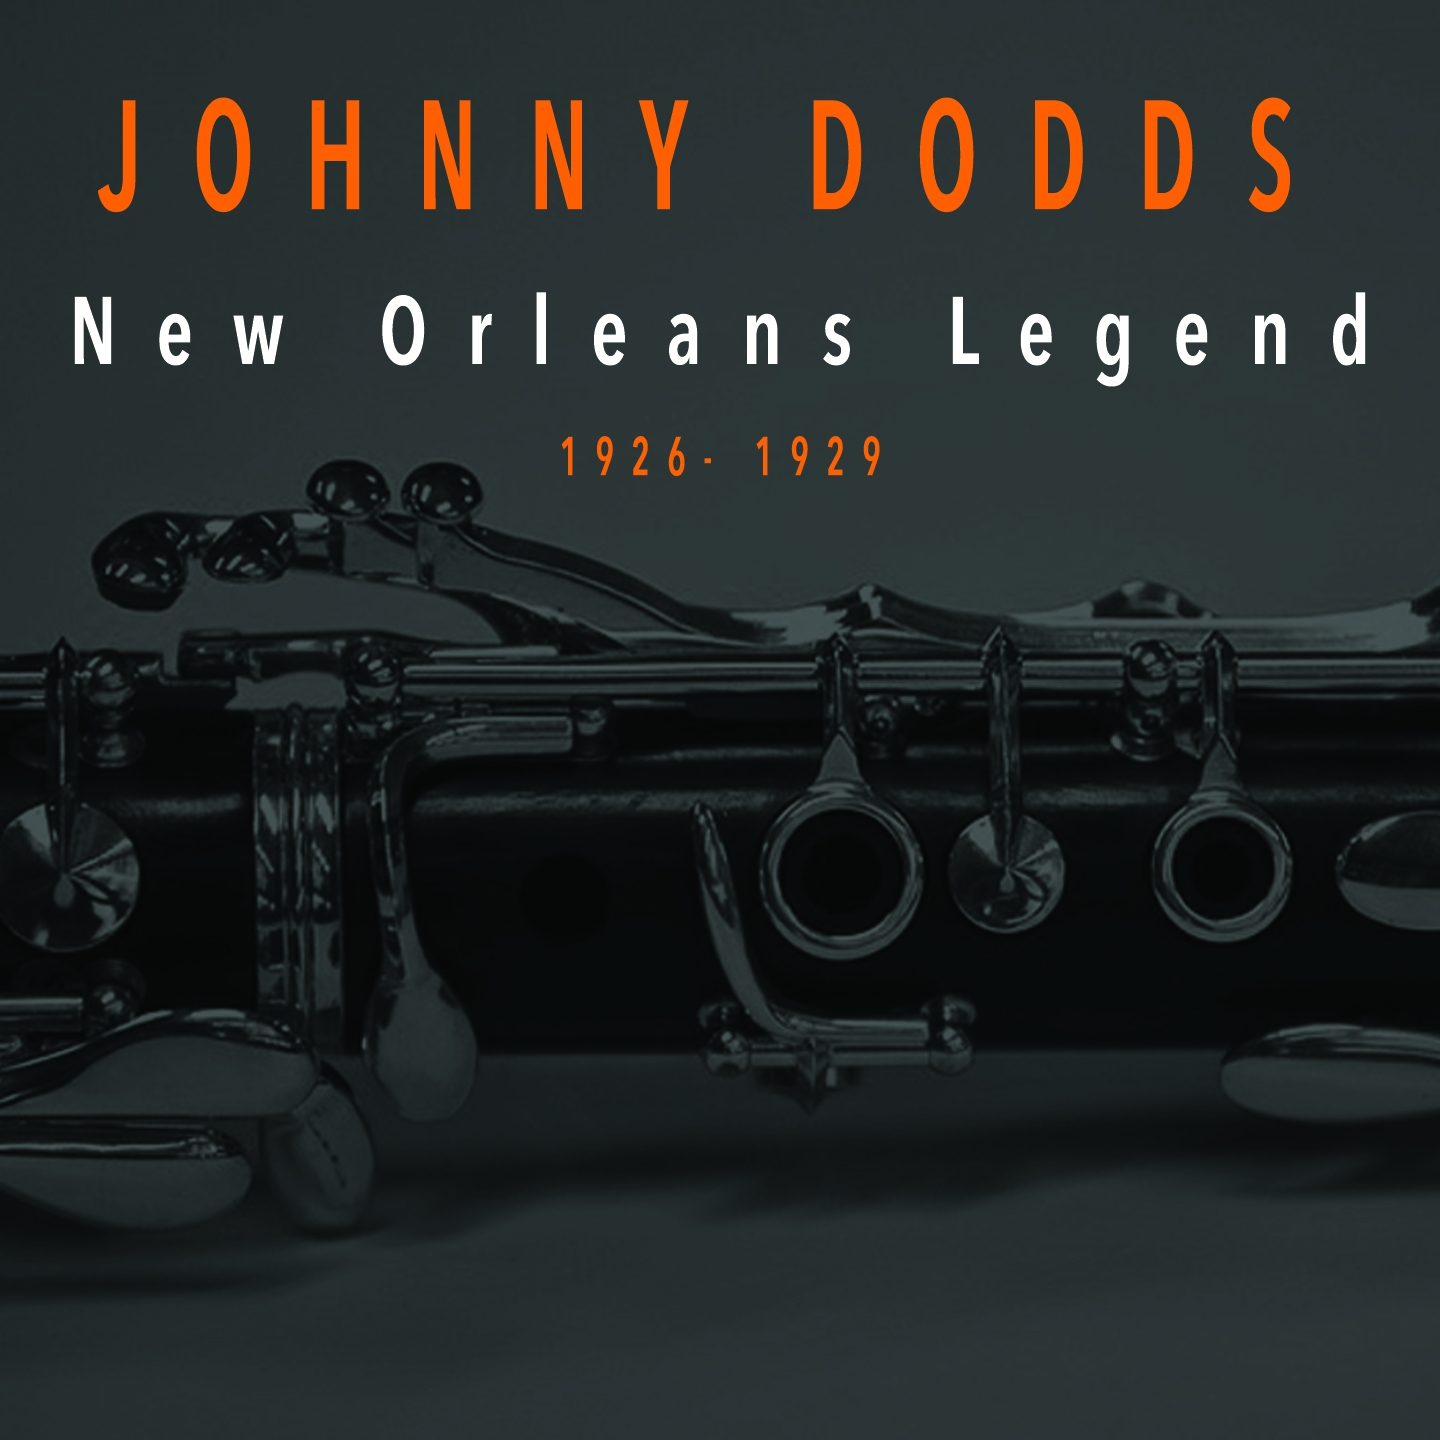 Johnny Dodds - New Orleans Legend (1926-1929)